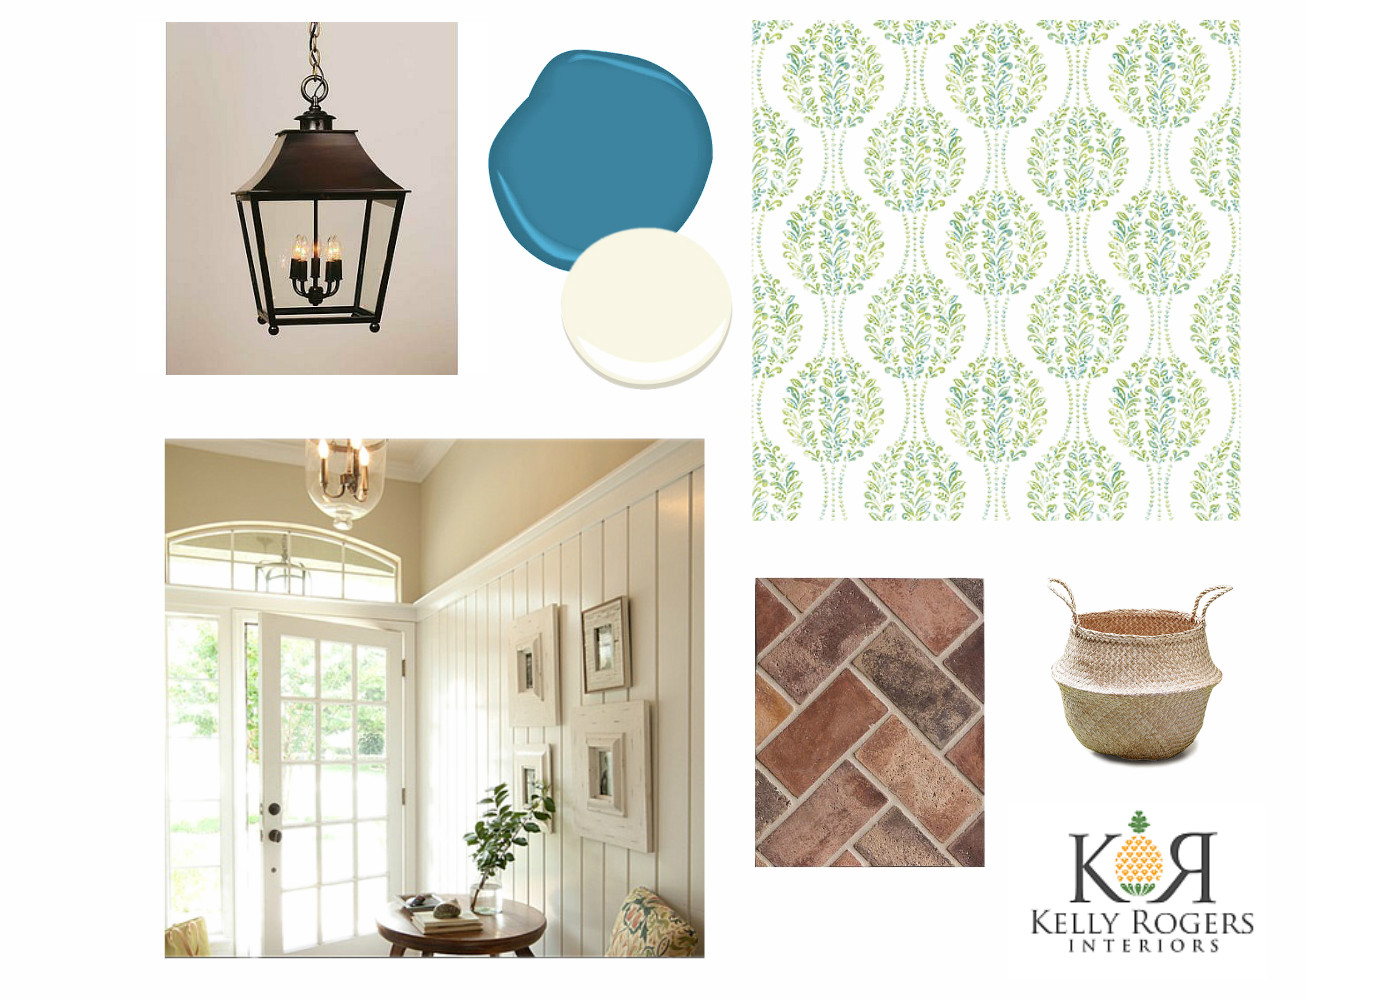 Day 107: Project 1896 (Our Home Renovation)...Special Mudroom Edition!   Kelly Rogers Interiors   Interiors for Families